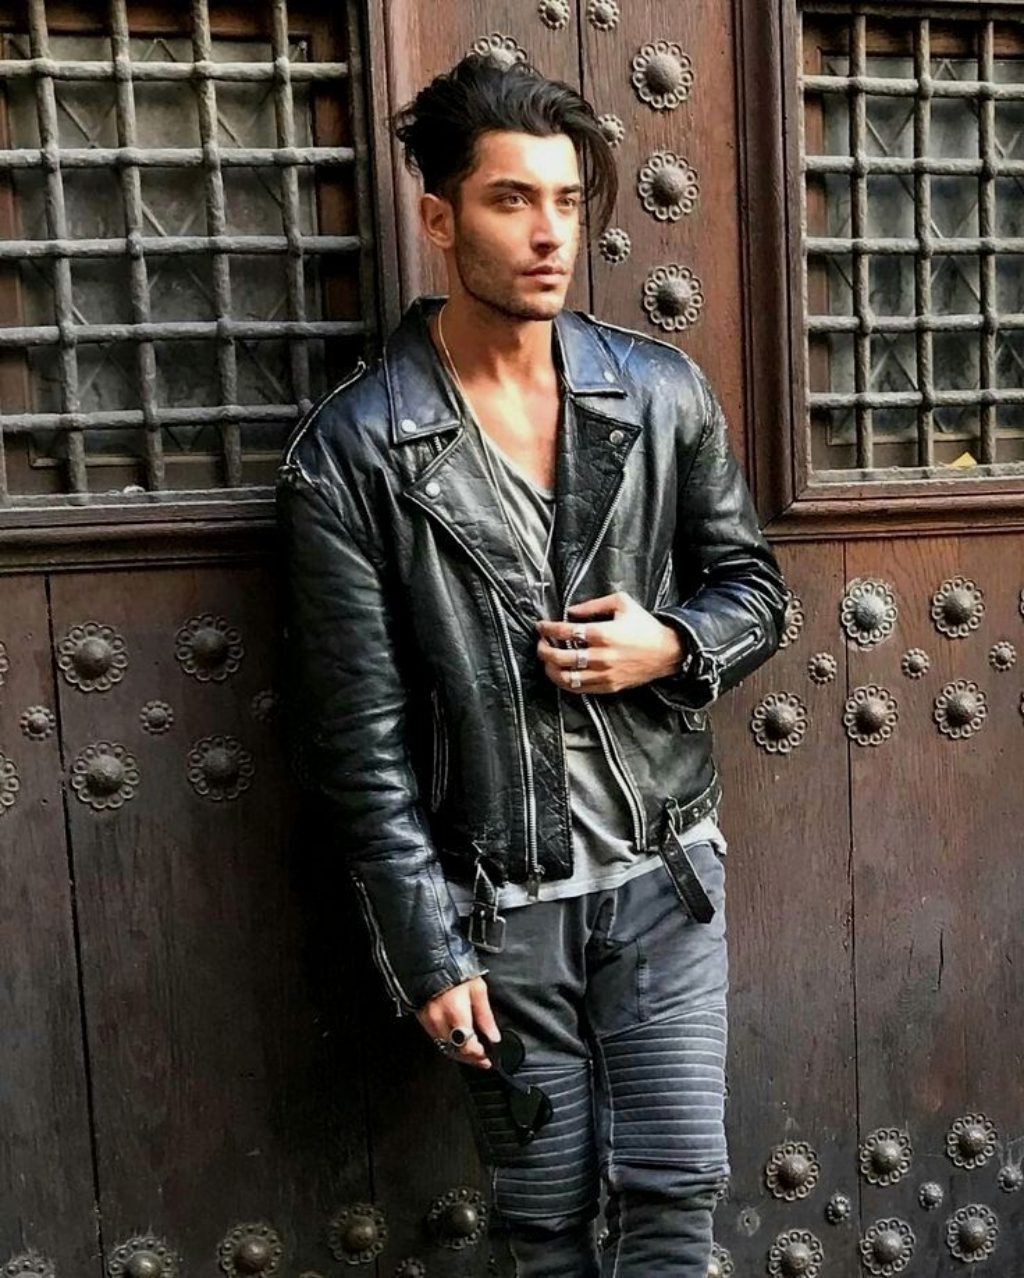 Sexy Male Model With Great Hair Wearing a Black Motorcycle Jacket